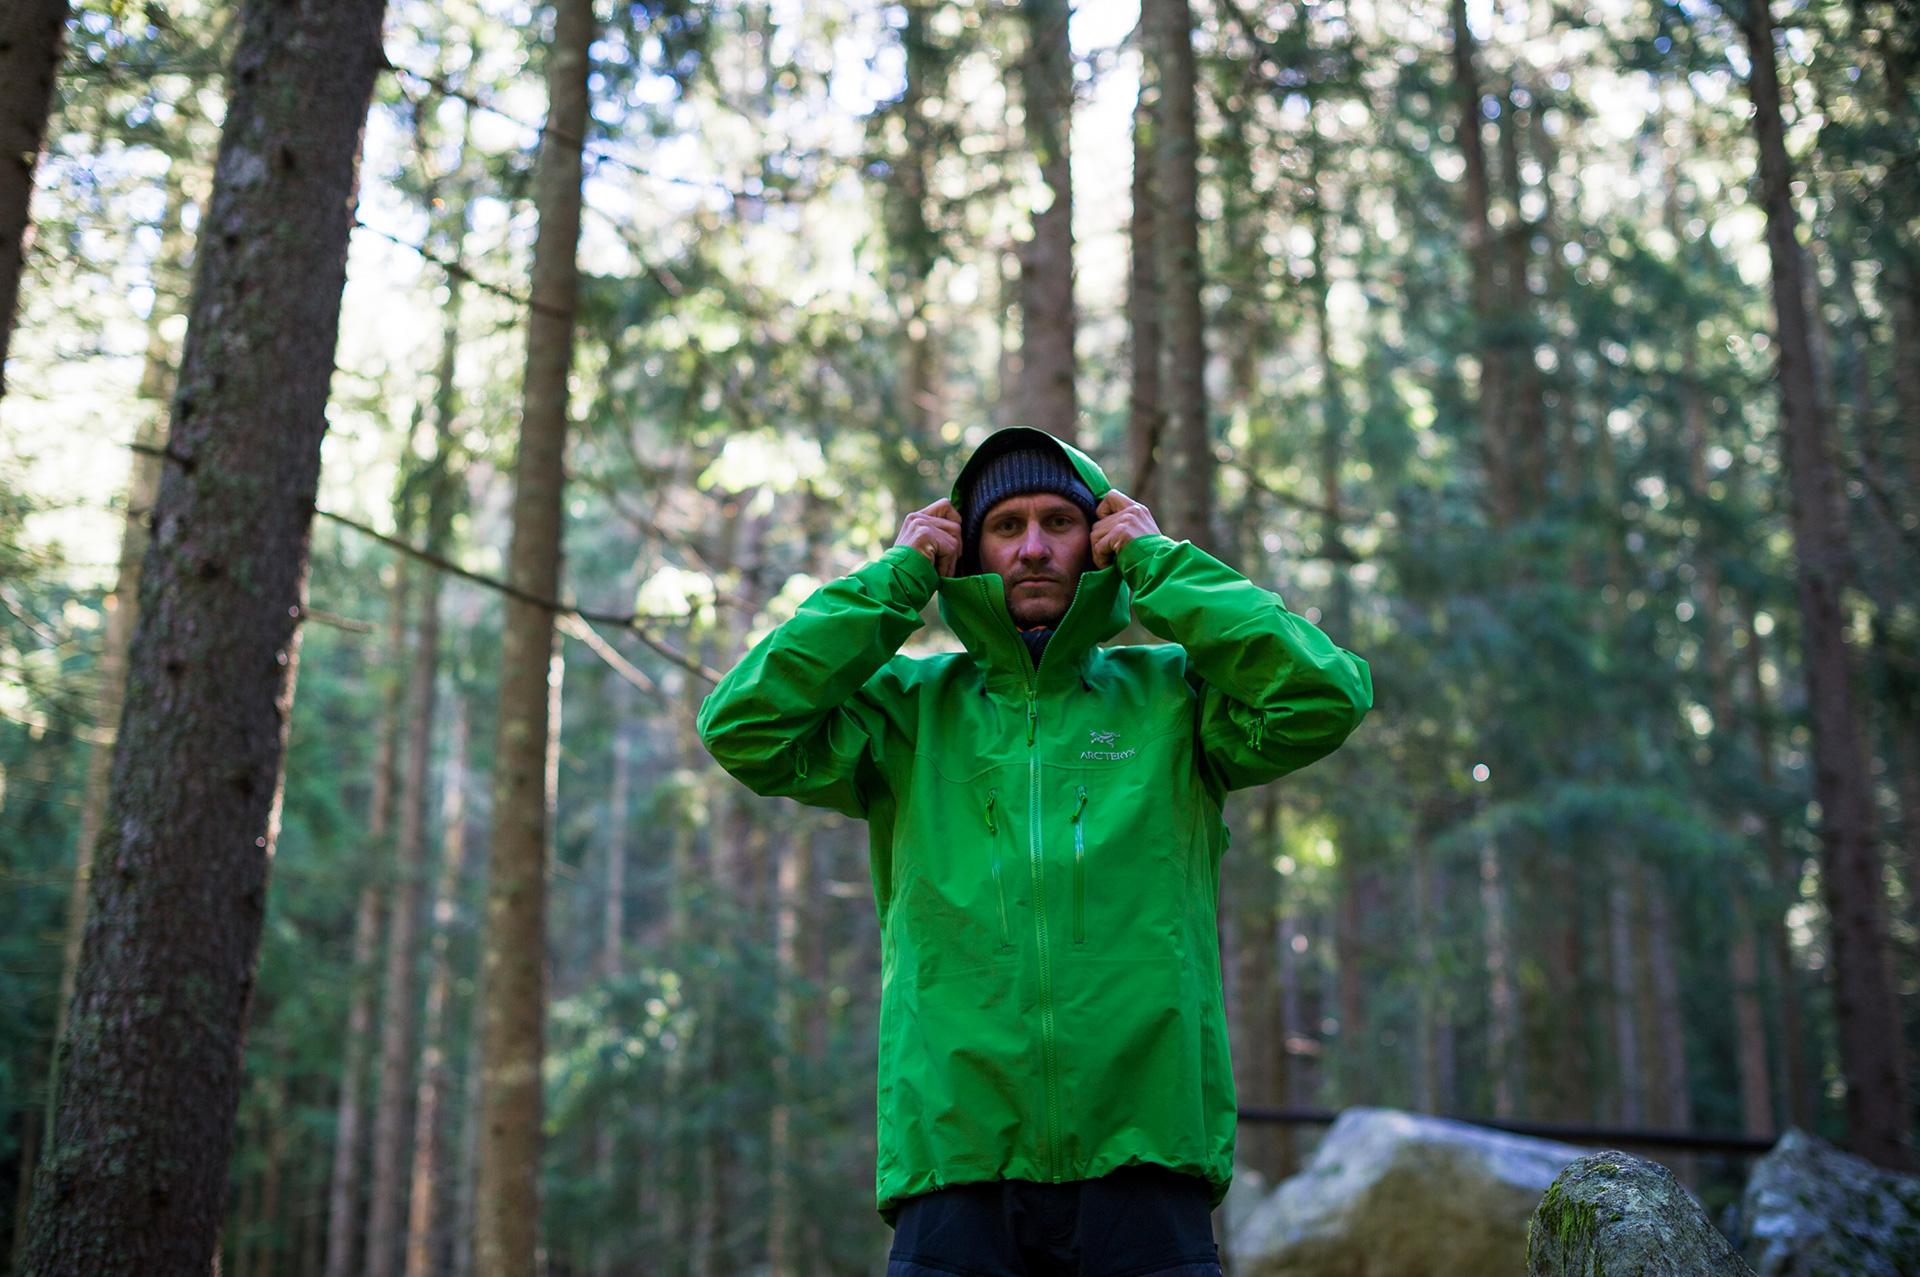 Arcteryx Klettergurt Test : Arcteryx alpha sv jacket review explore maga